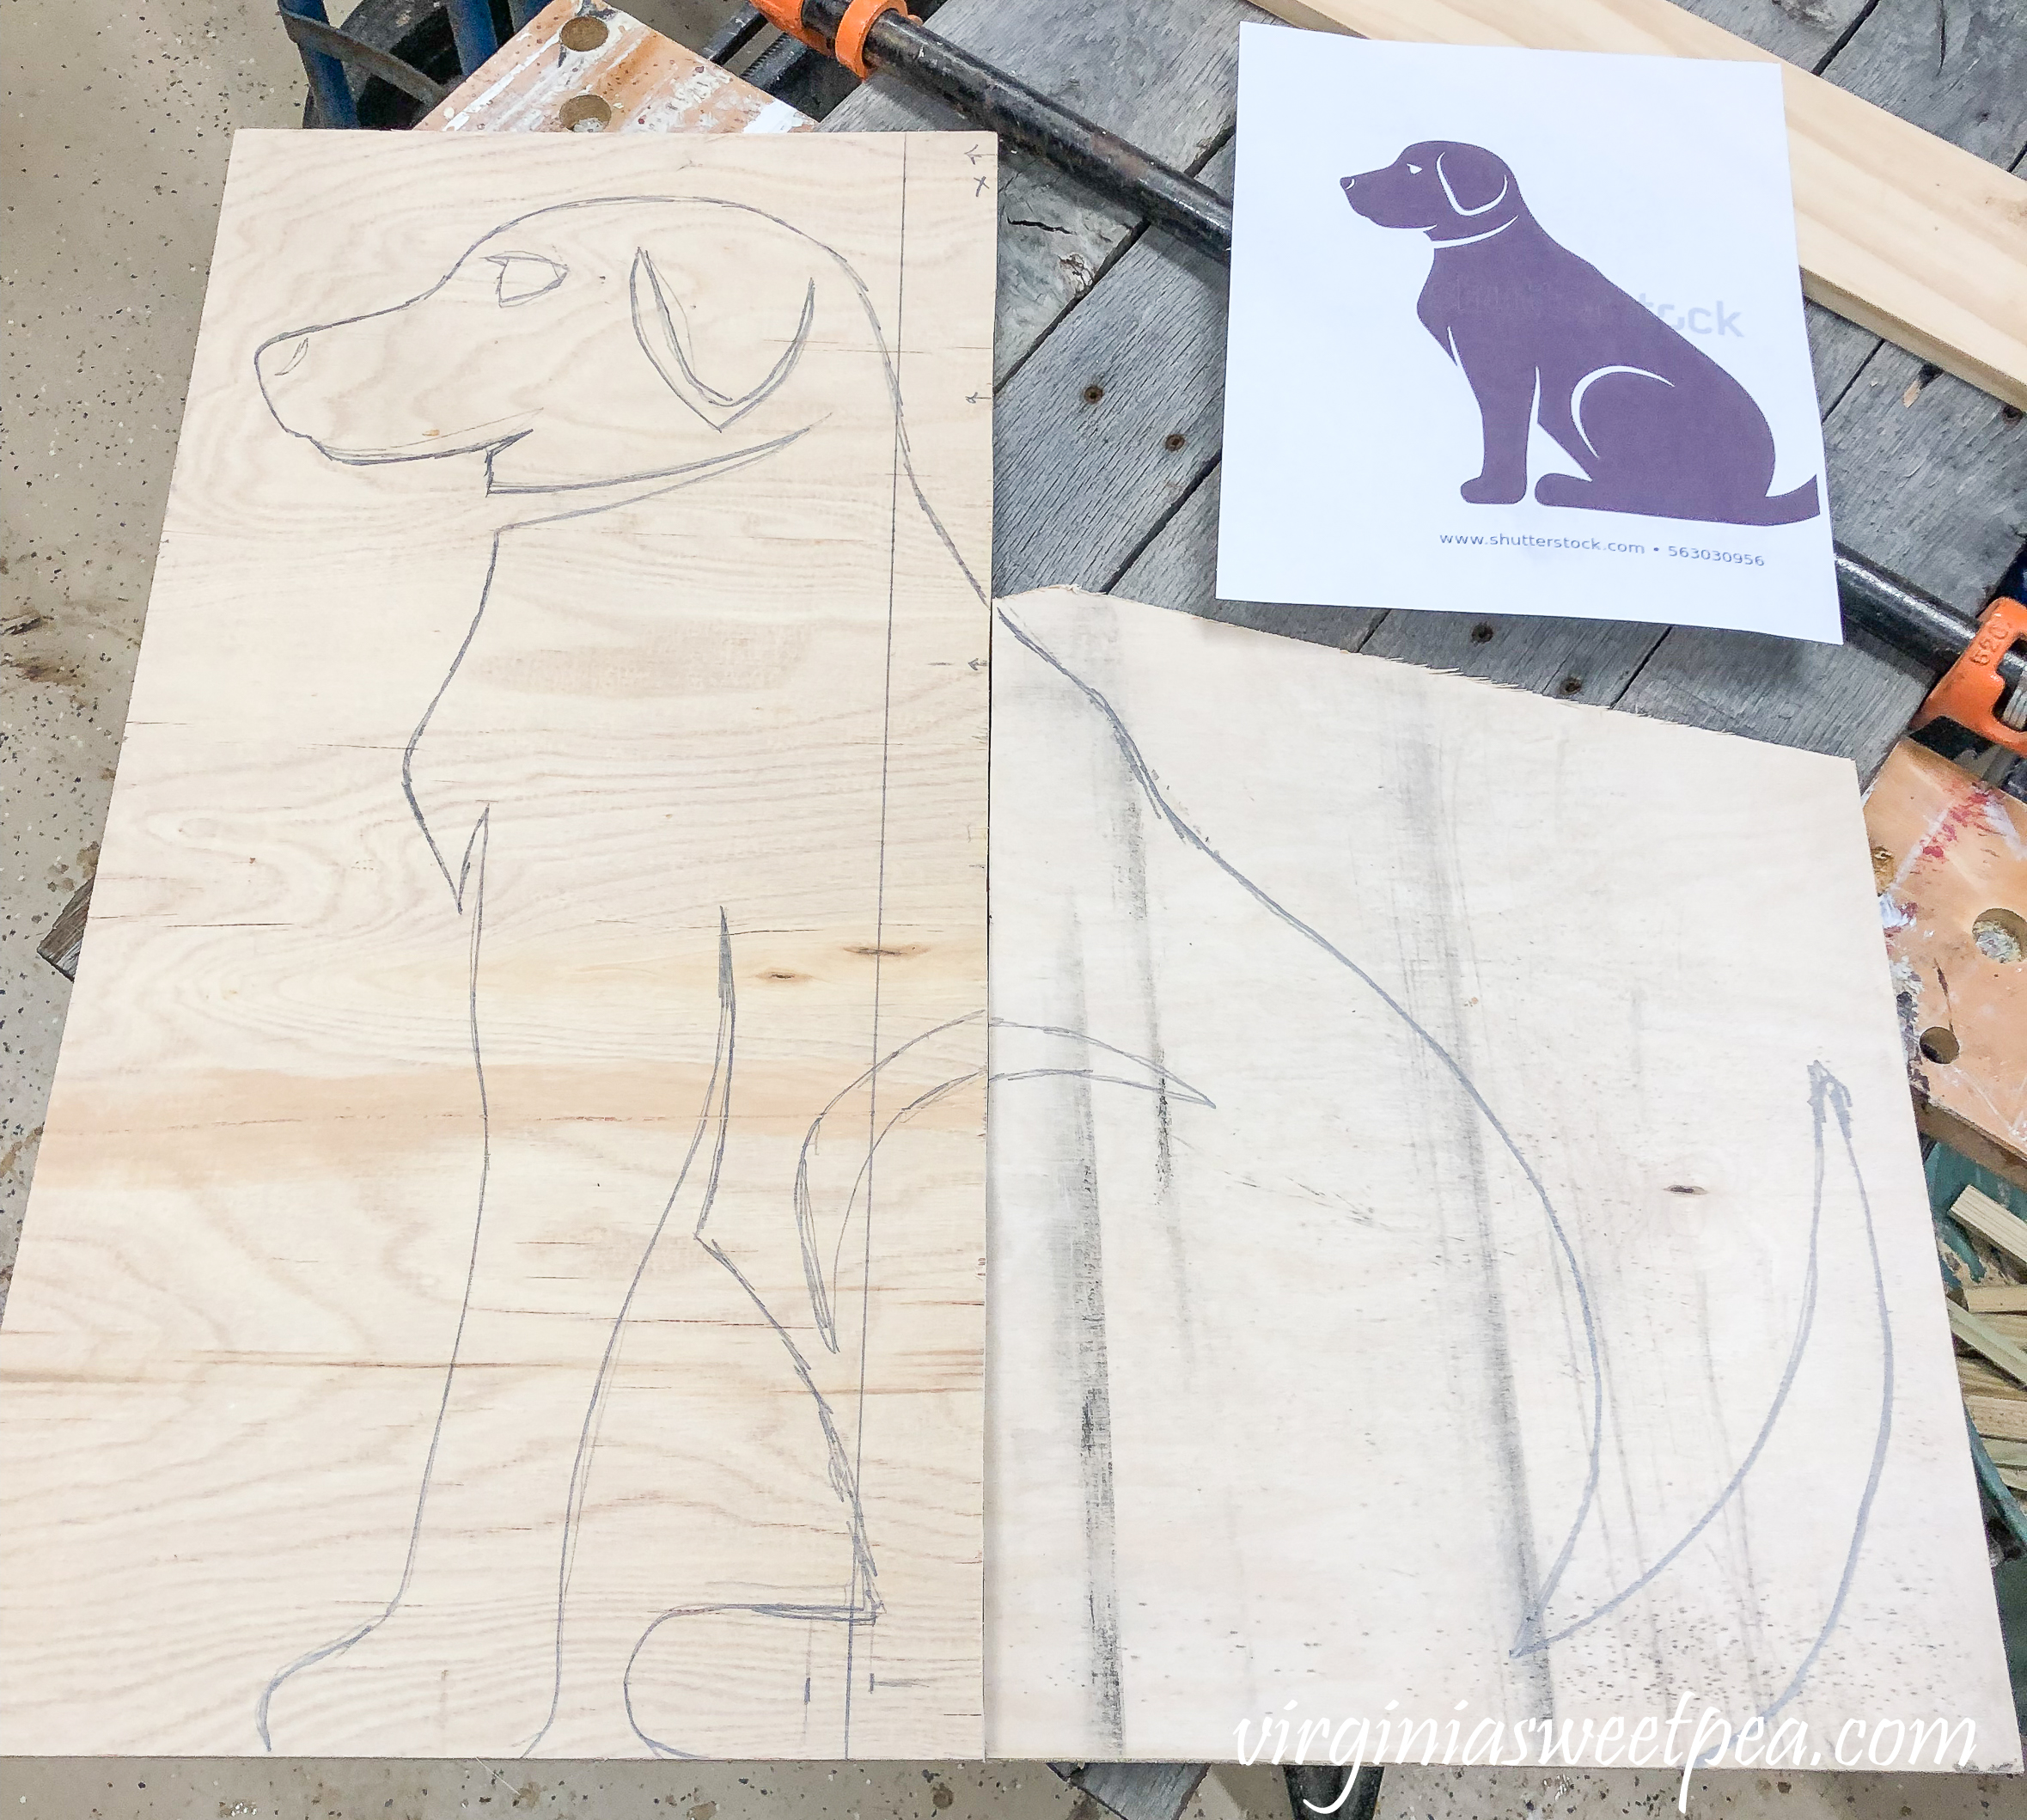 Instructions to make a decorative dog to hang or display using pallet wood.